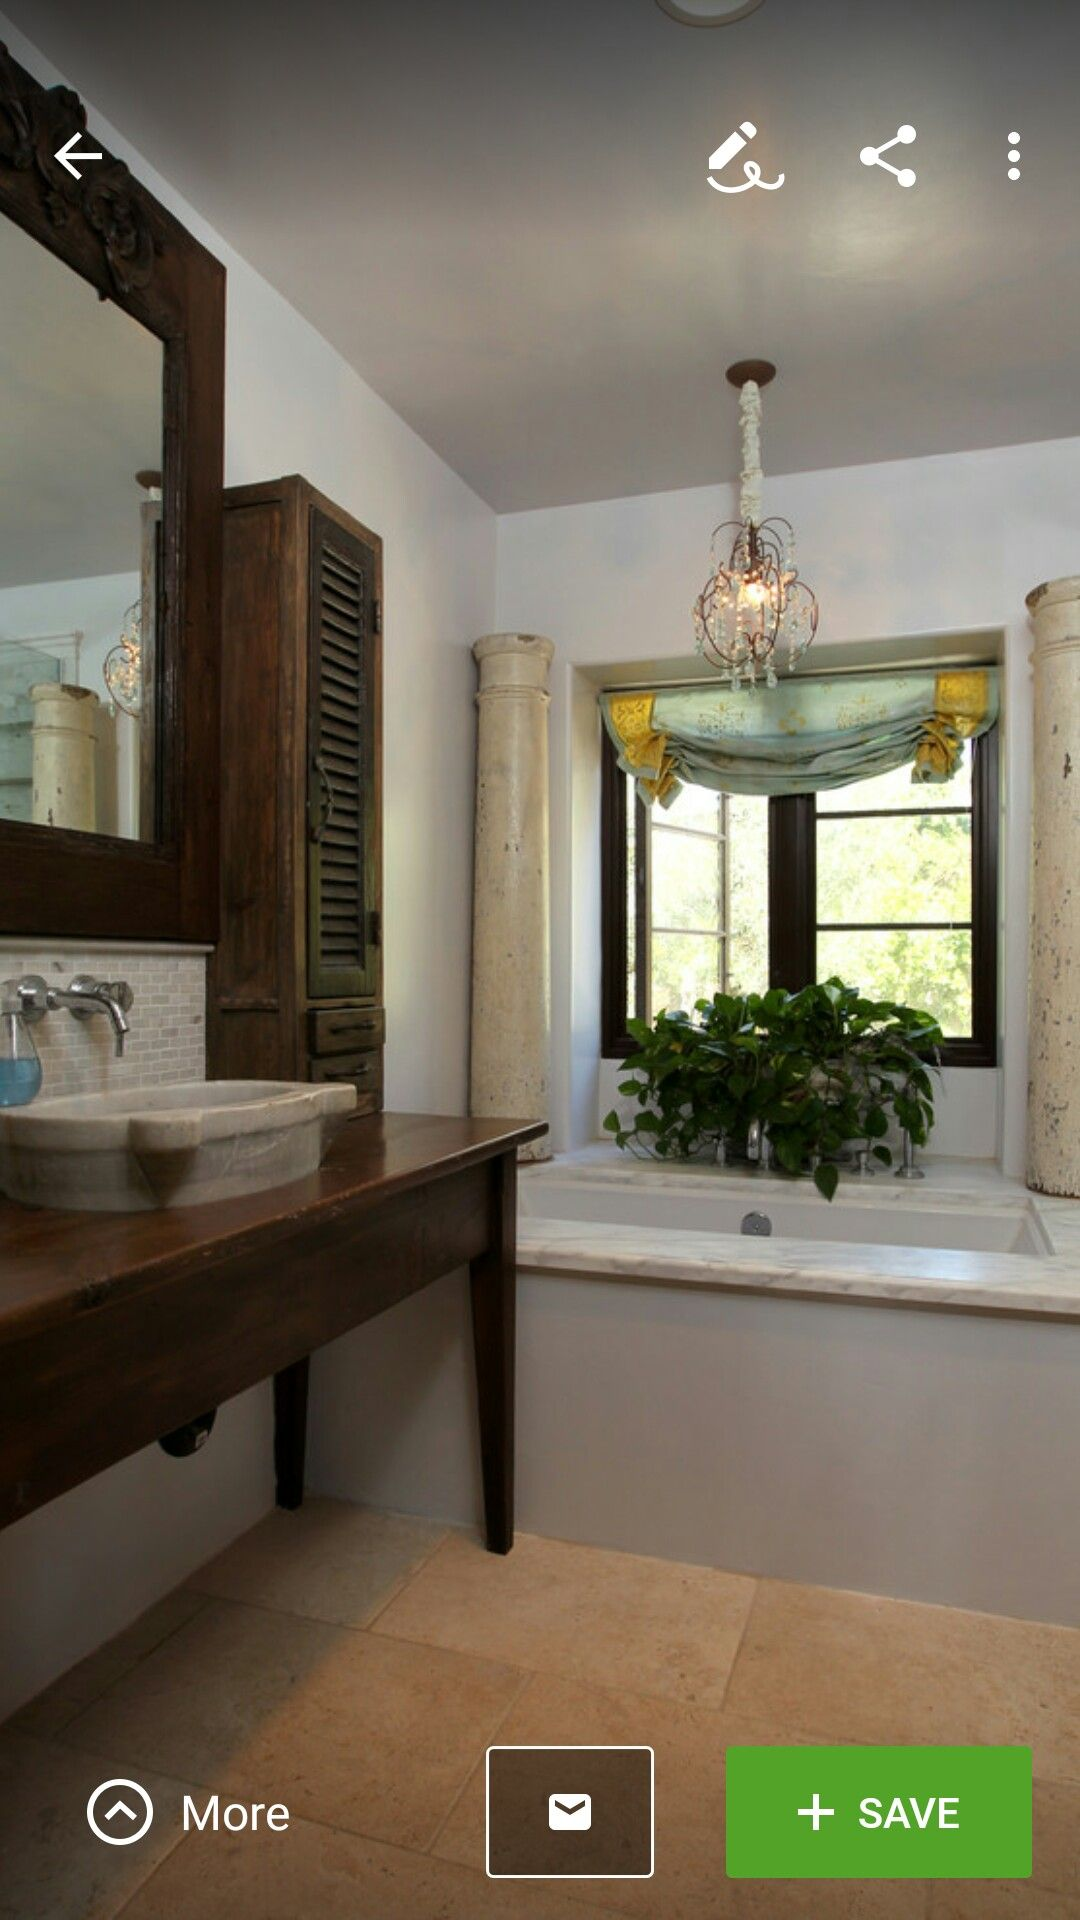 Salle De Bain Simmons ~ saved by wendy simmons saved to master bathroom love this stunning